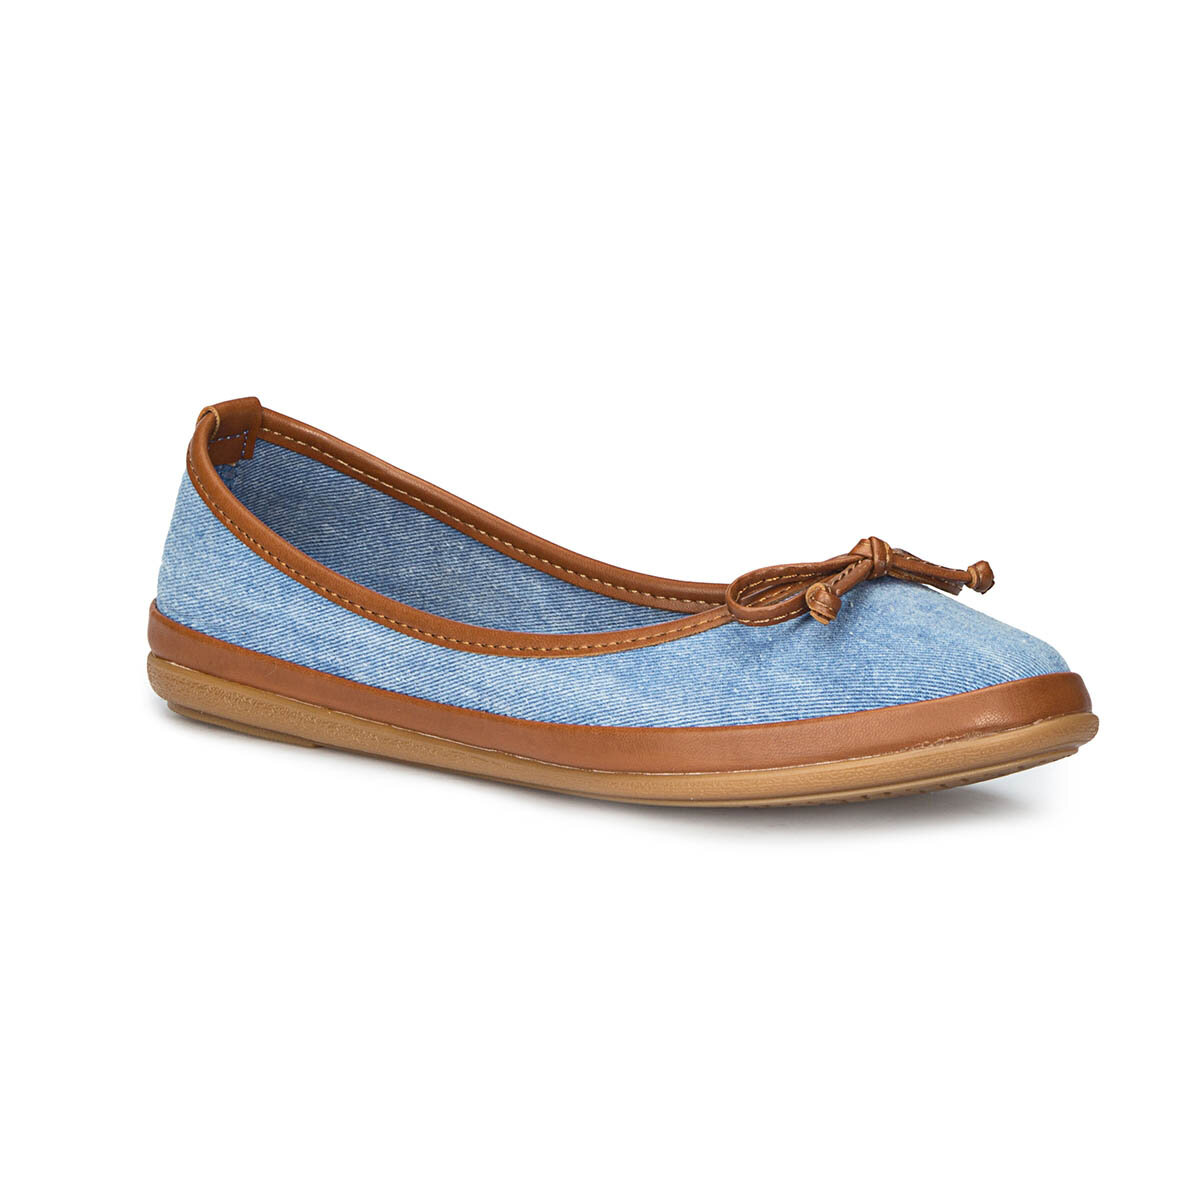 FLO 71.155537TZ Blue Women 'S Ballerina Polaris